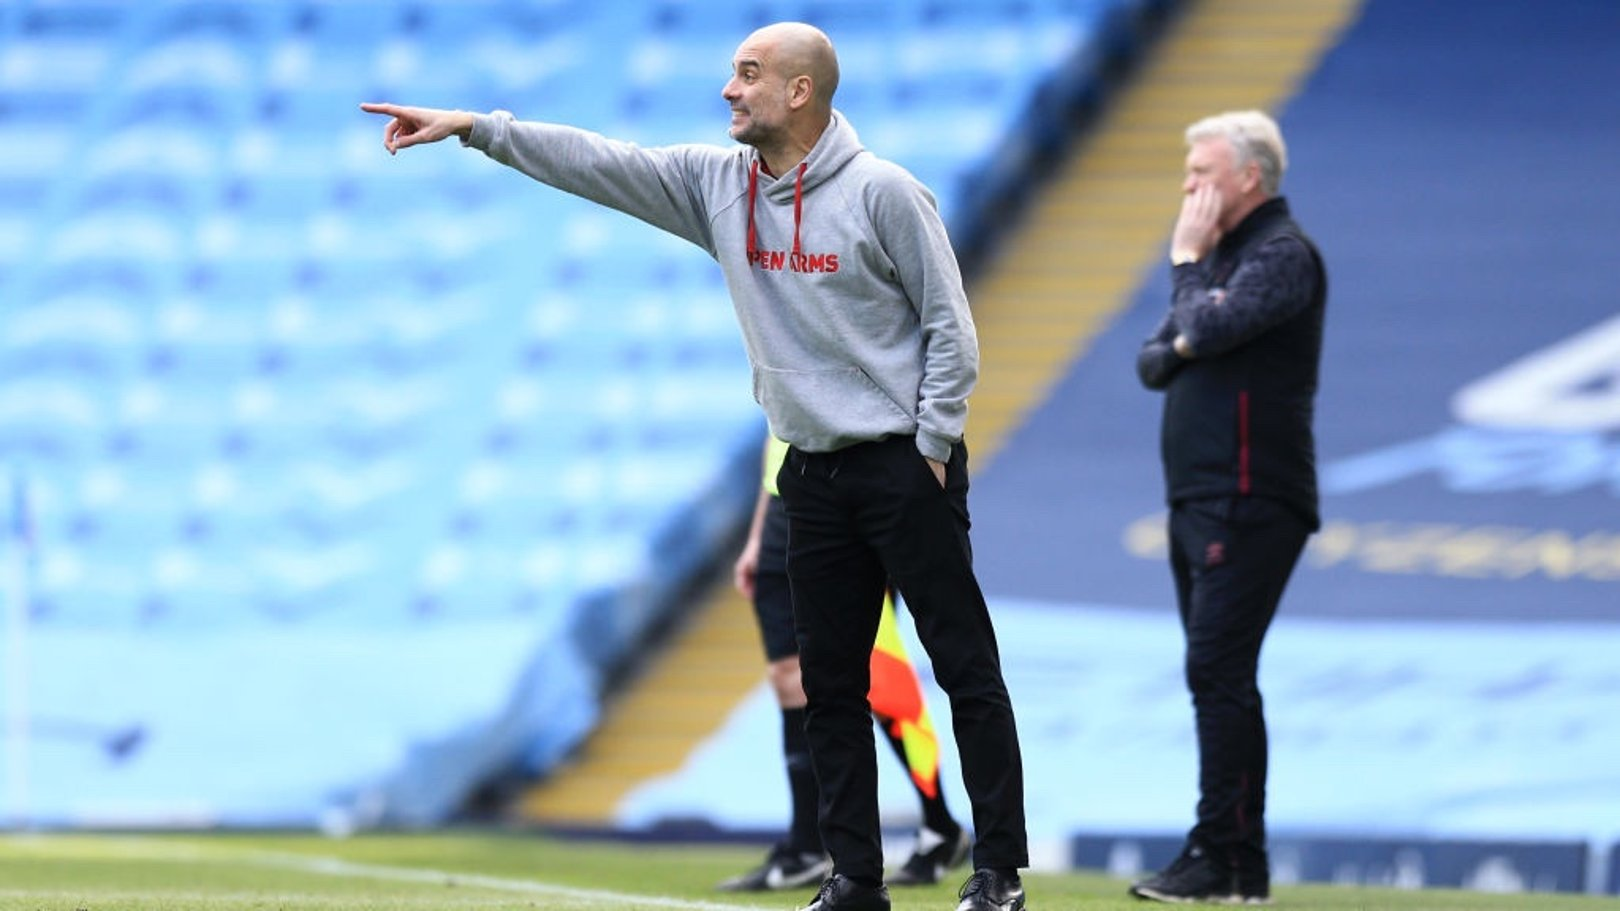 PEP TALK: Guardiola provides instructions from the touchline.